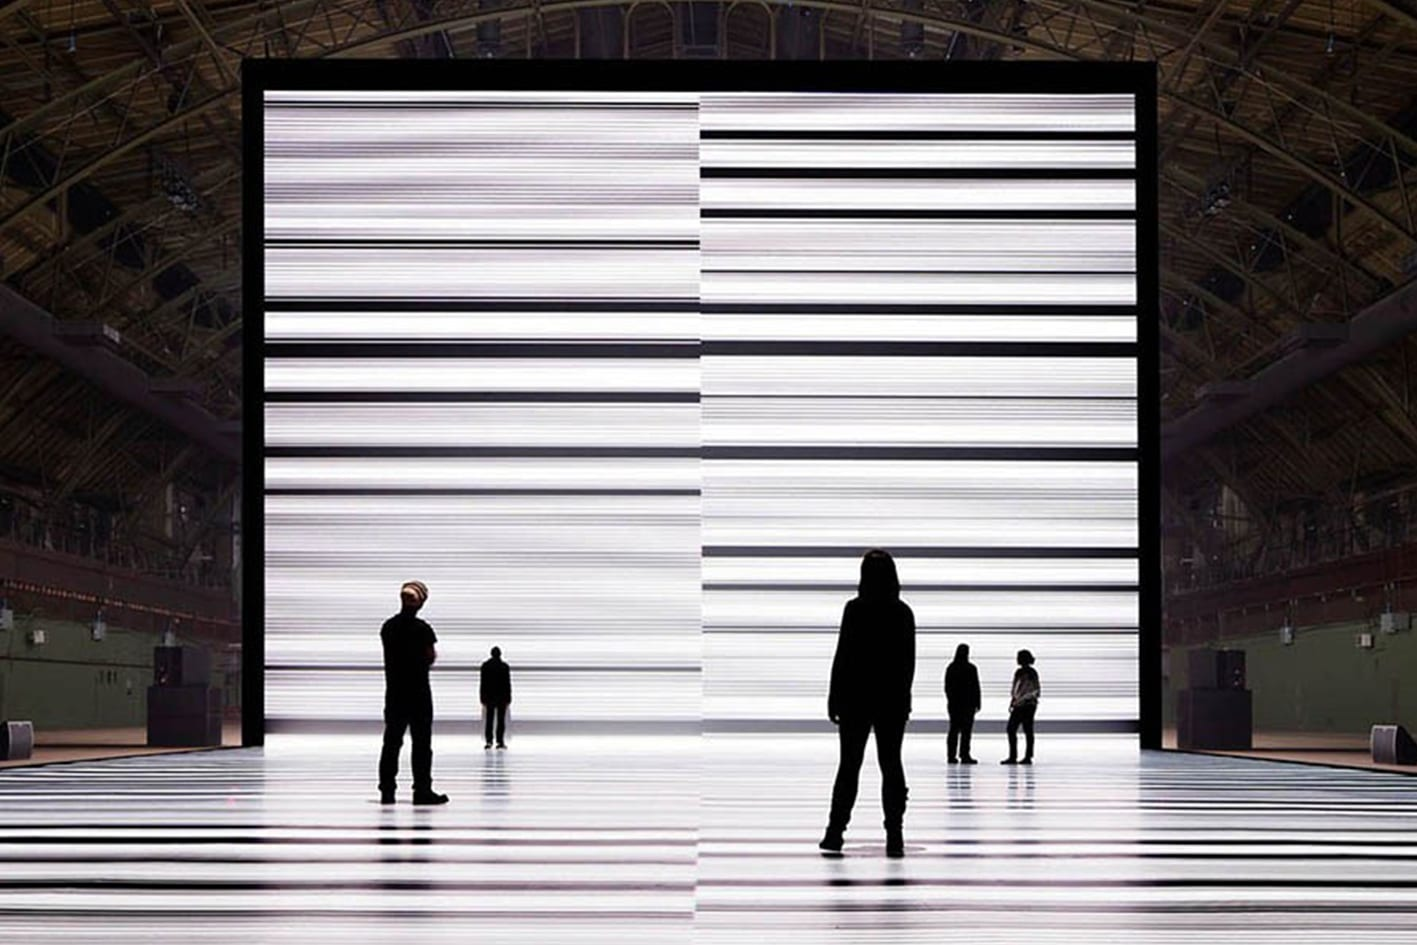 Ryoji Ikeda Et William Forsythe Présentent Deux Installations Gigantesques à La Villette